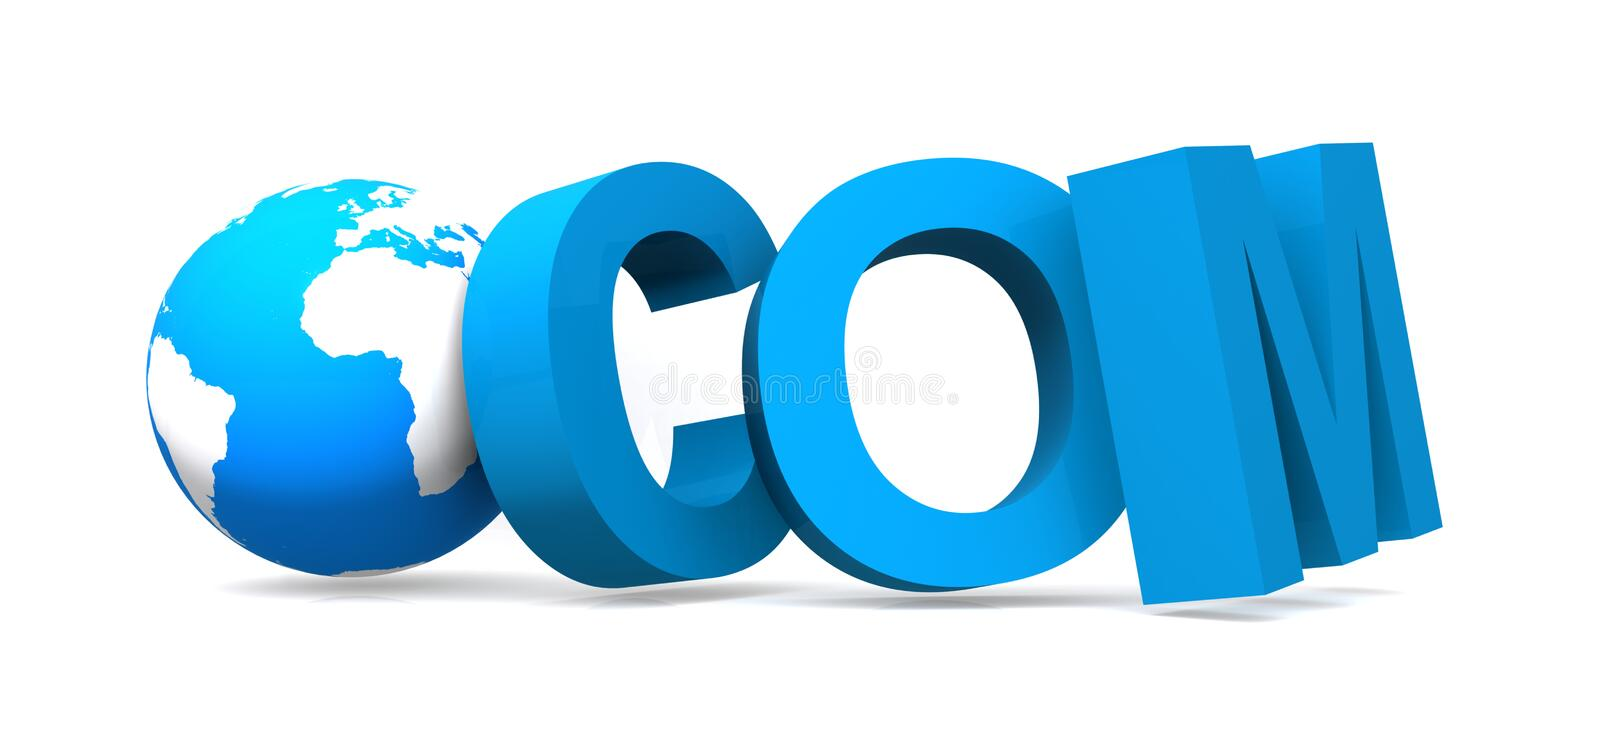 Blue com and globe. Blue com word with globe royalty free illustration